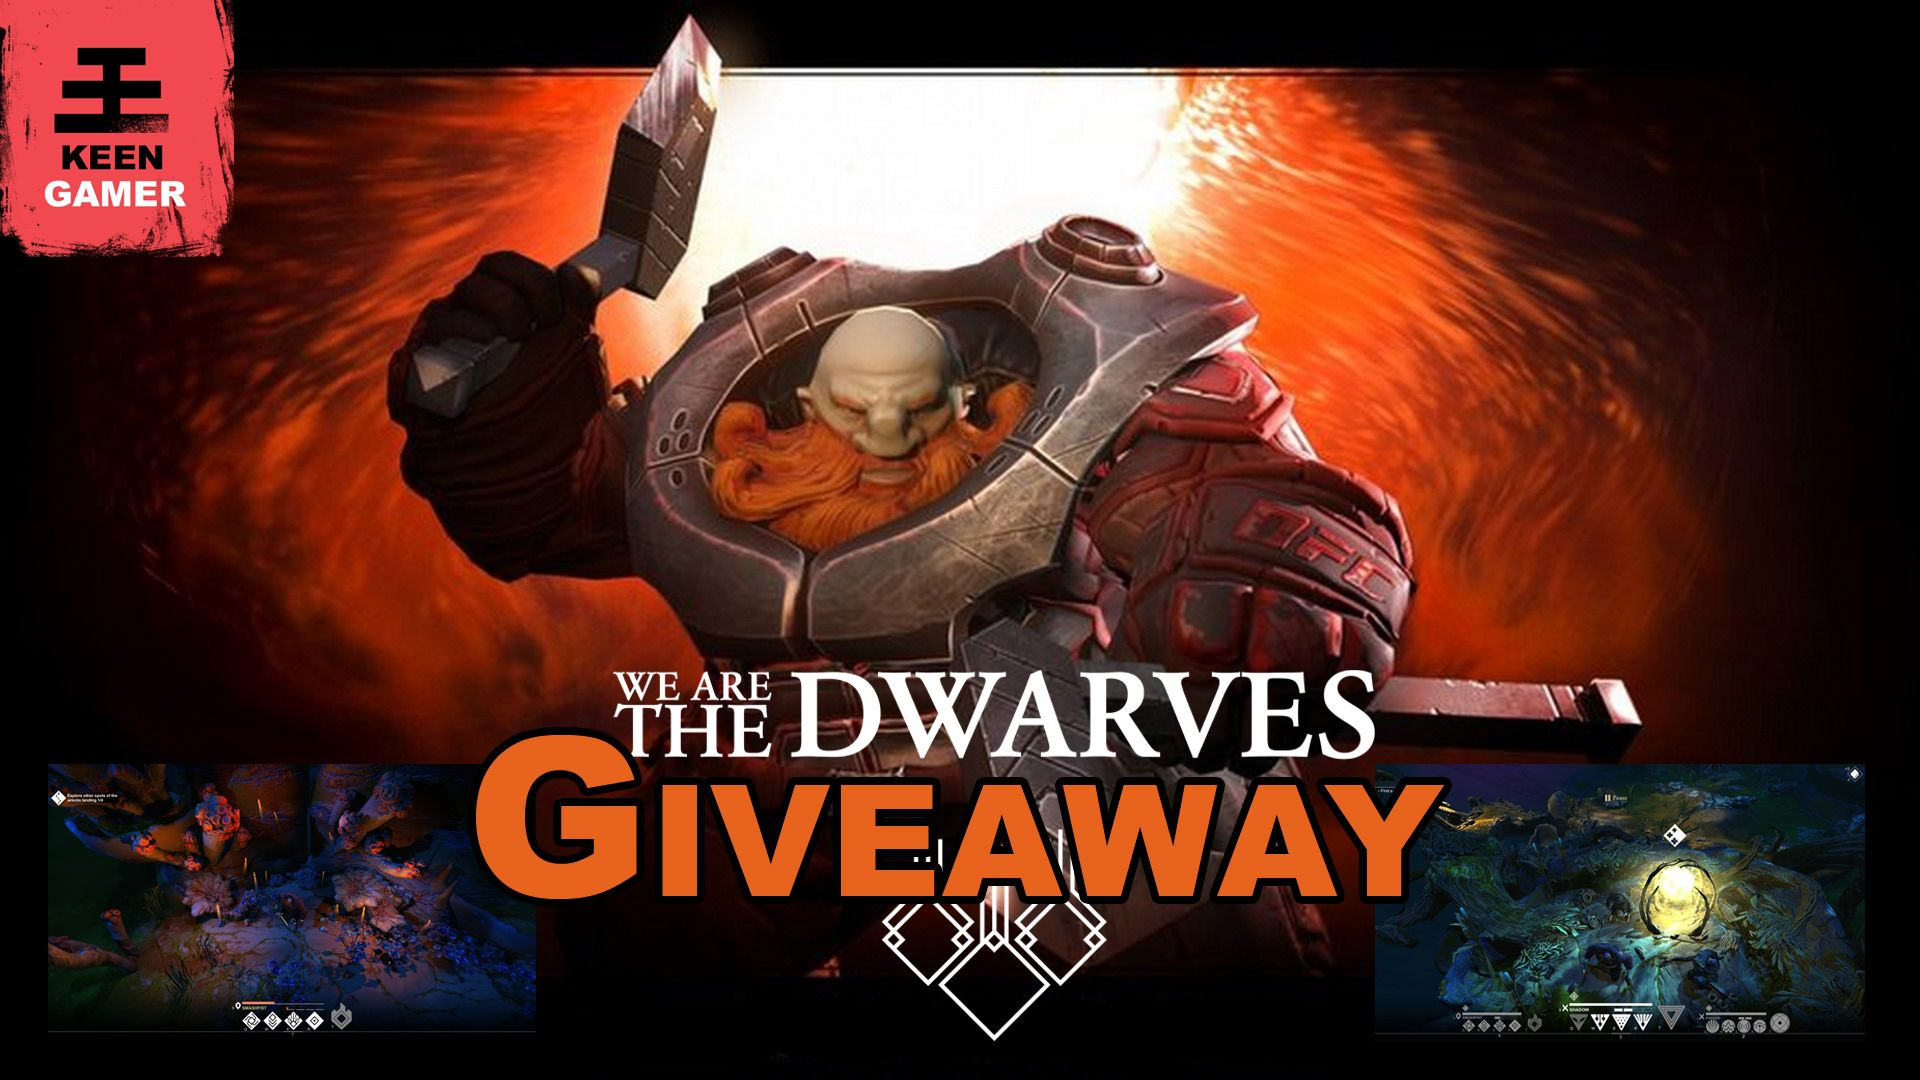 We Are The Dwarves Giveaway Giveaway, Free games